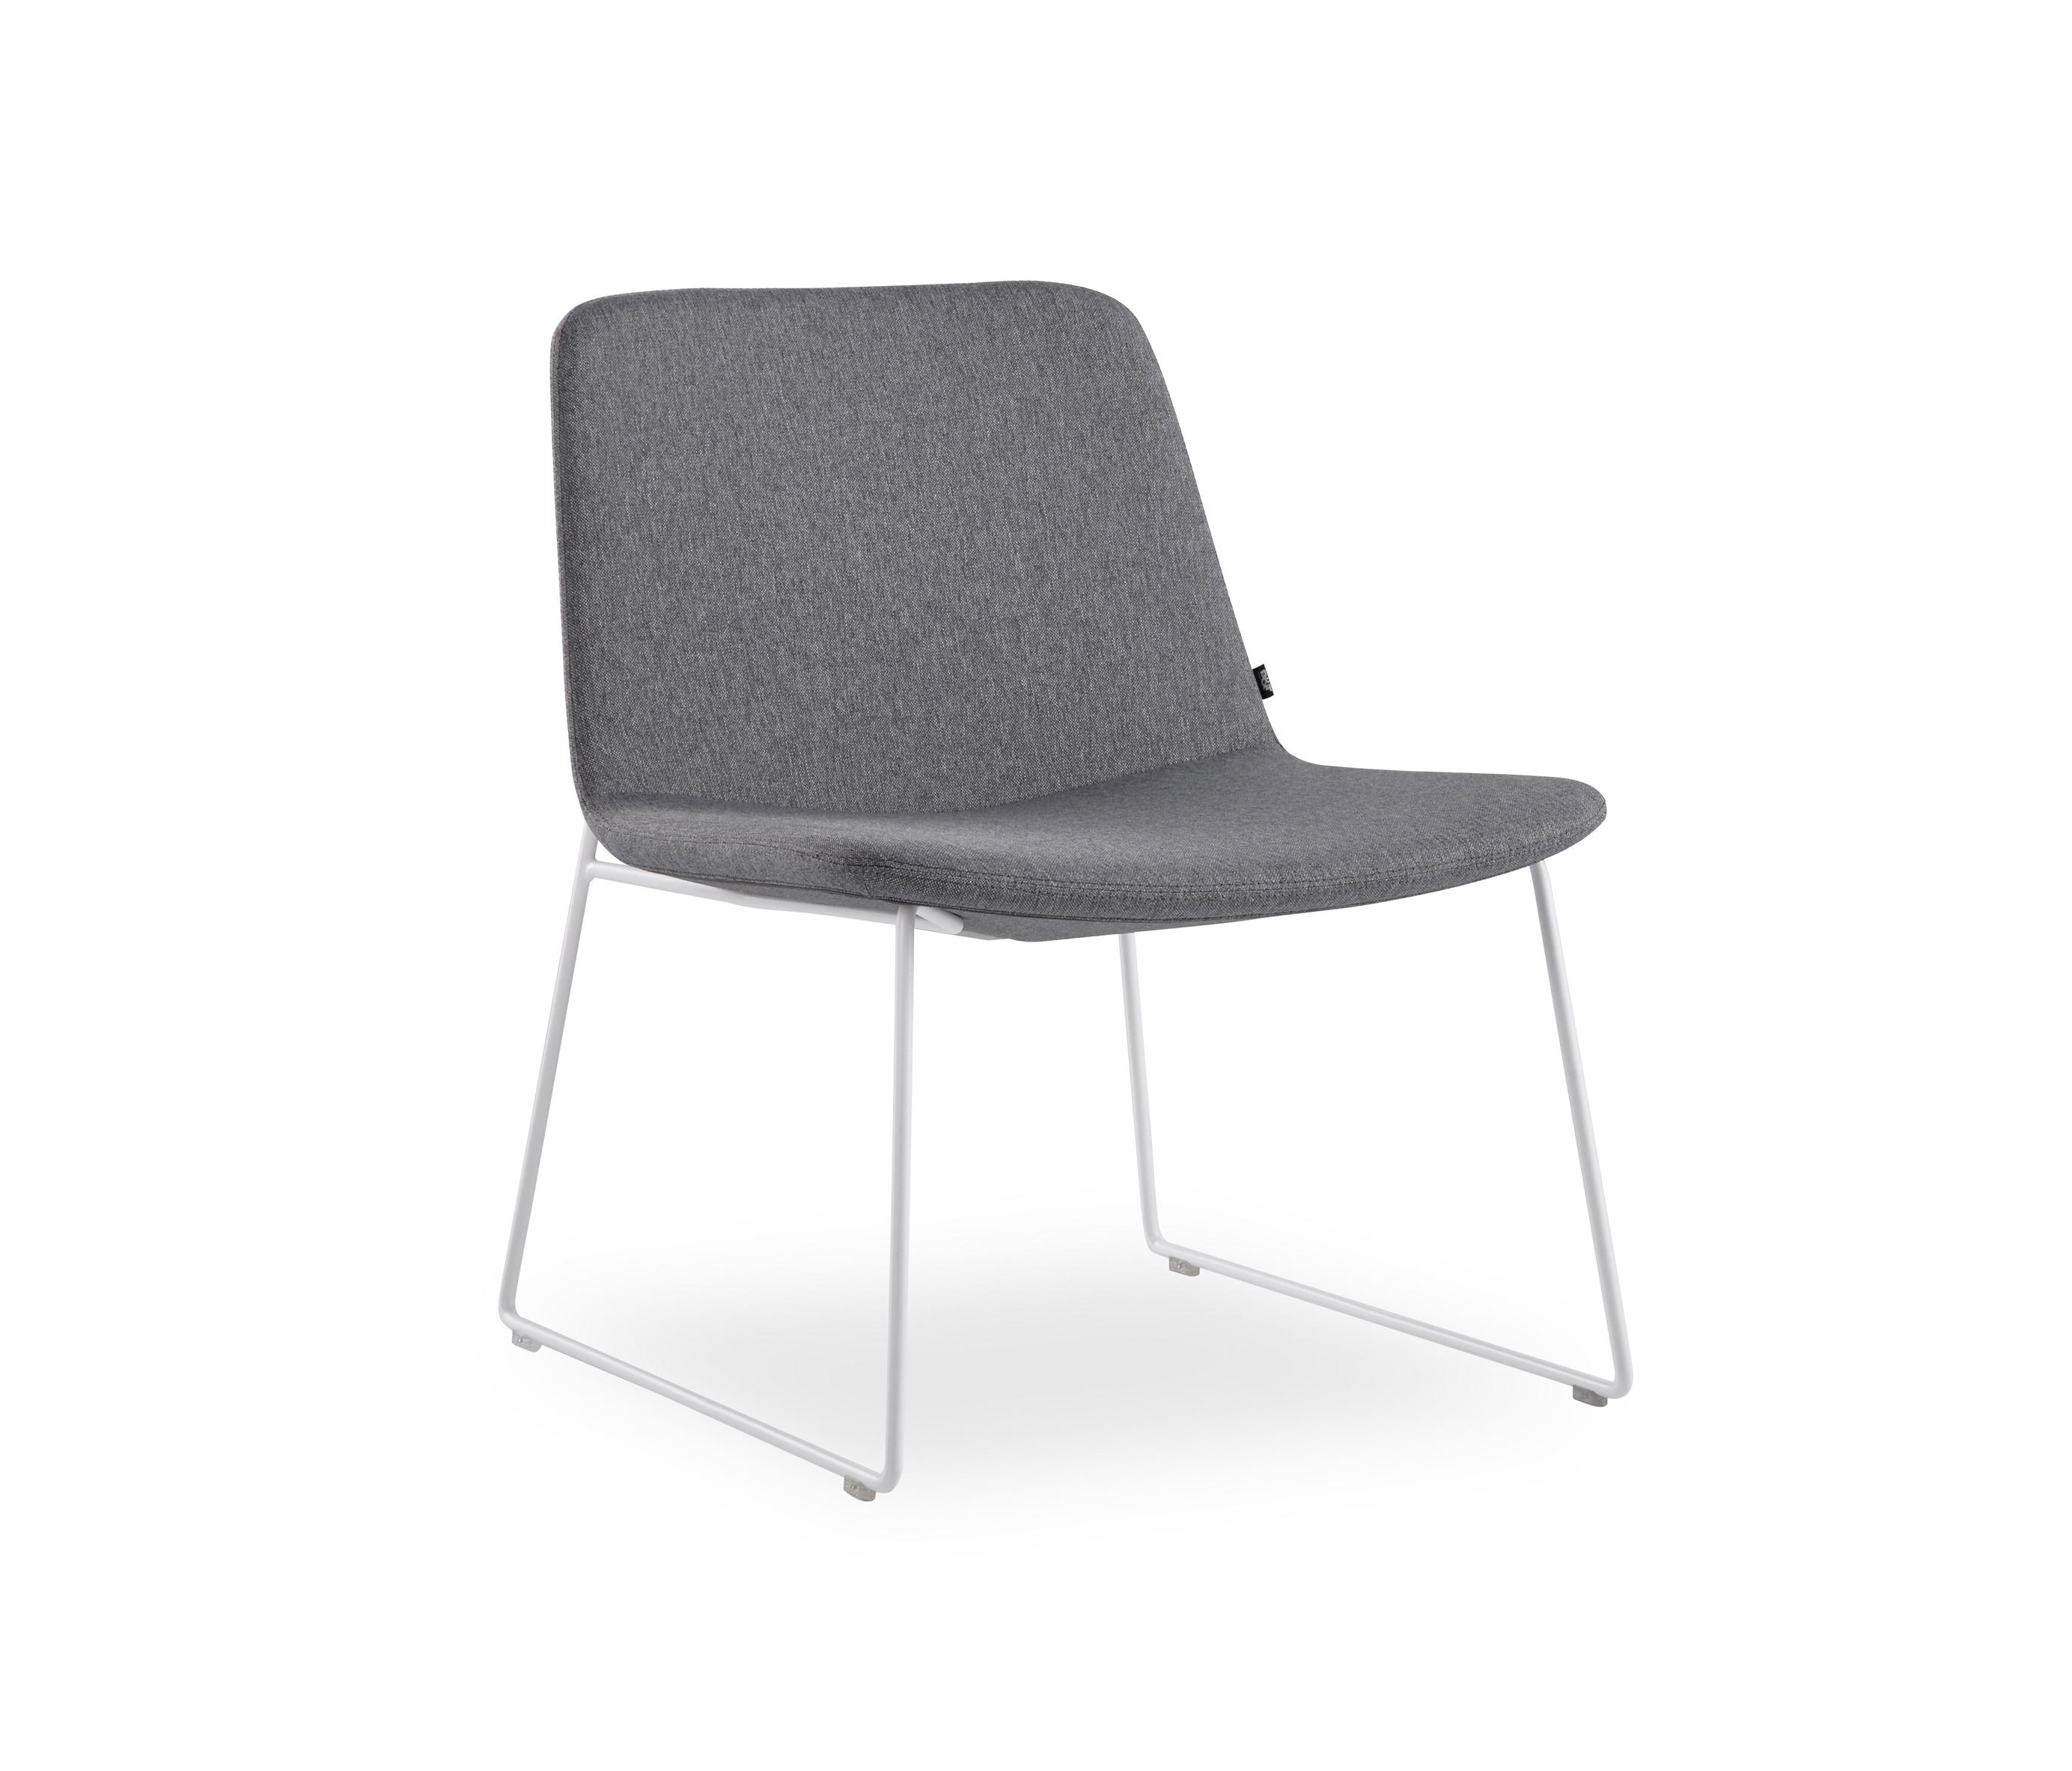 PERA Lounge Chair by B&T Design